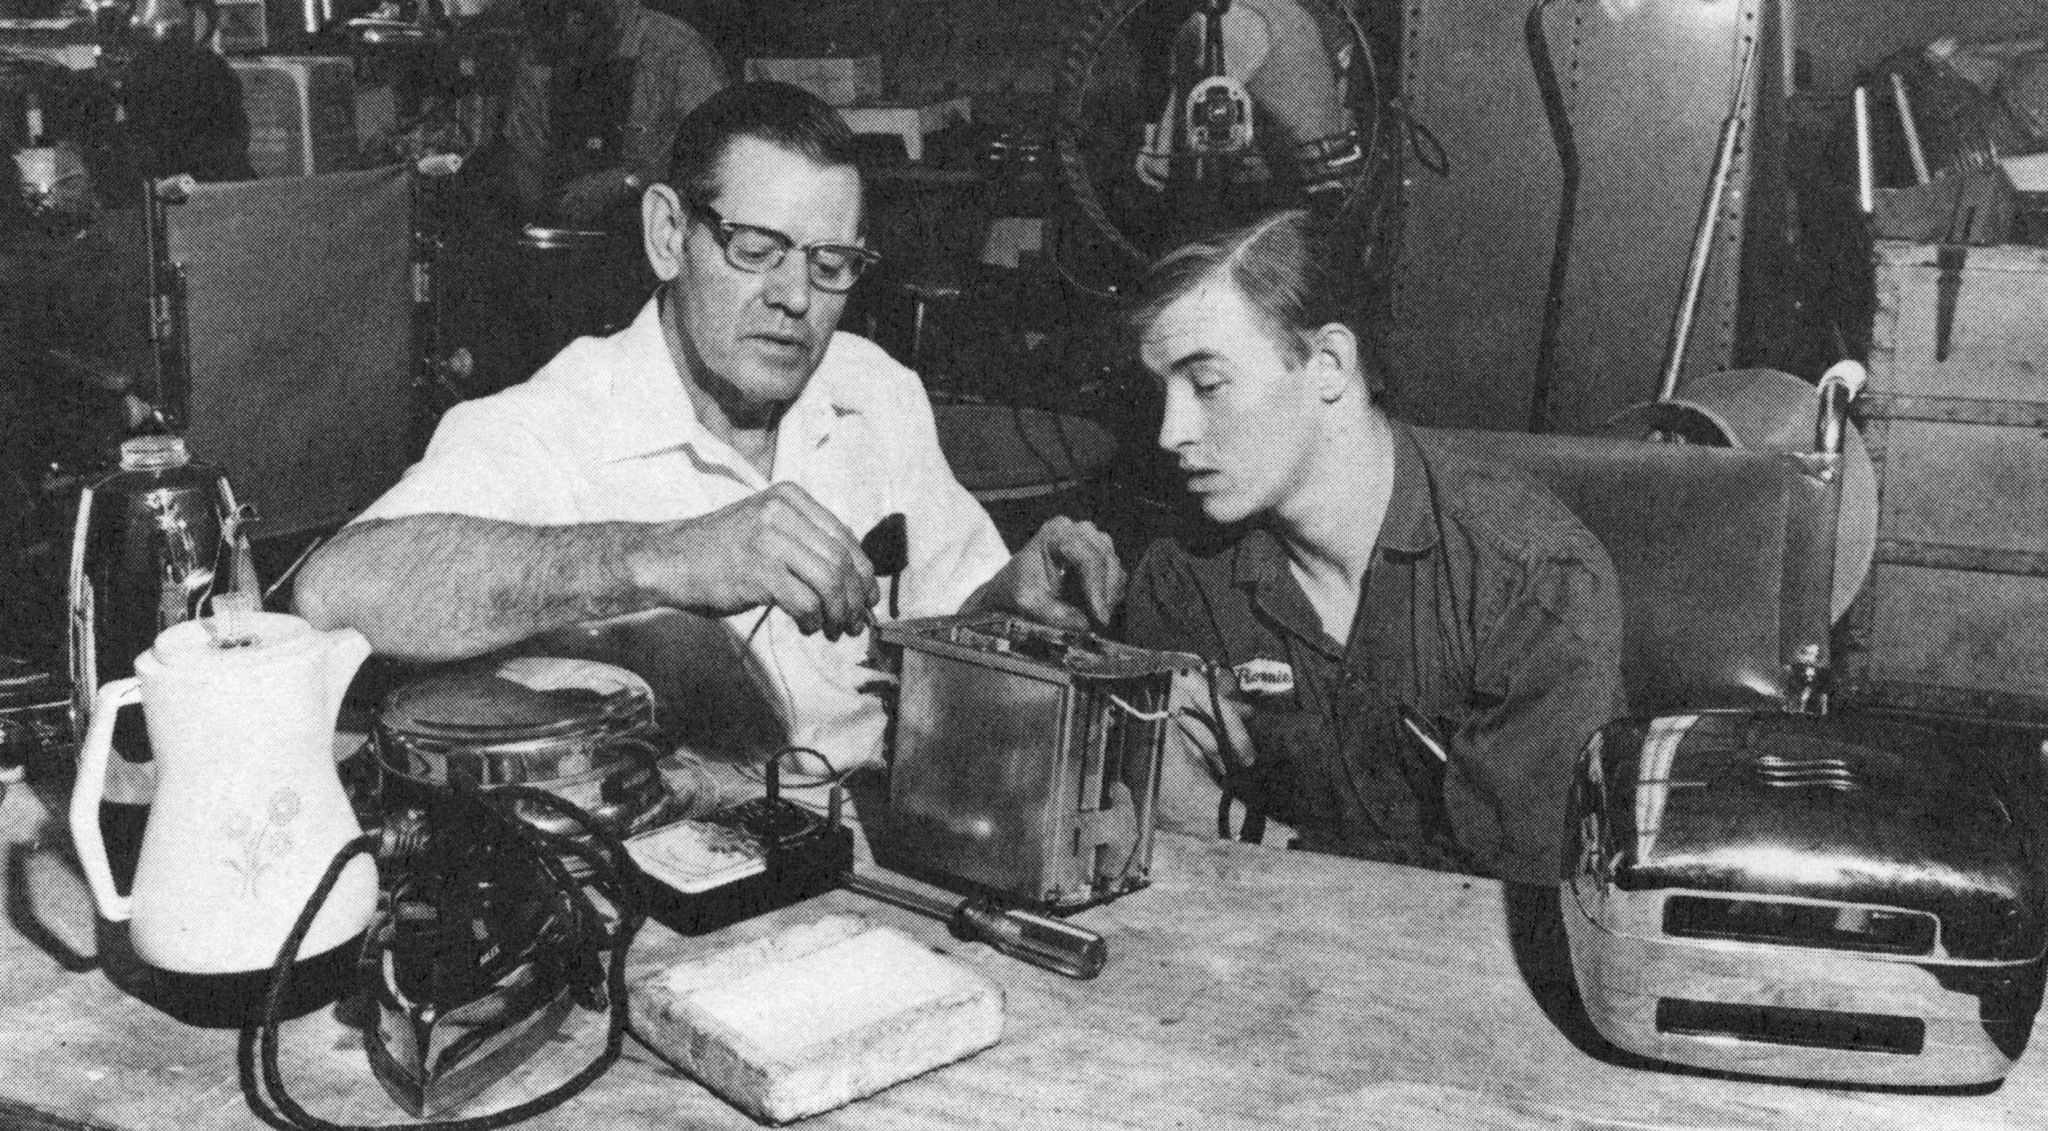 historical Goodwill photo of a young man learning to fix a toaster